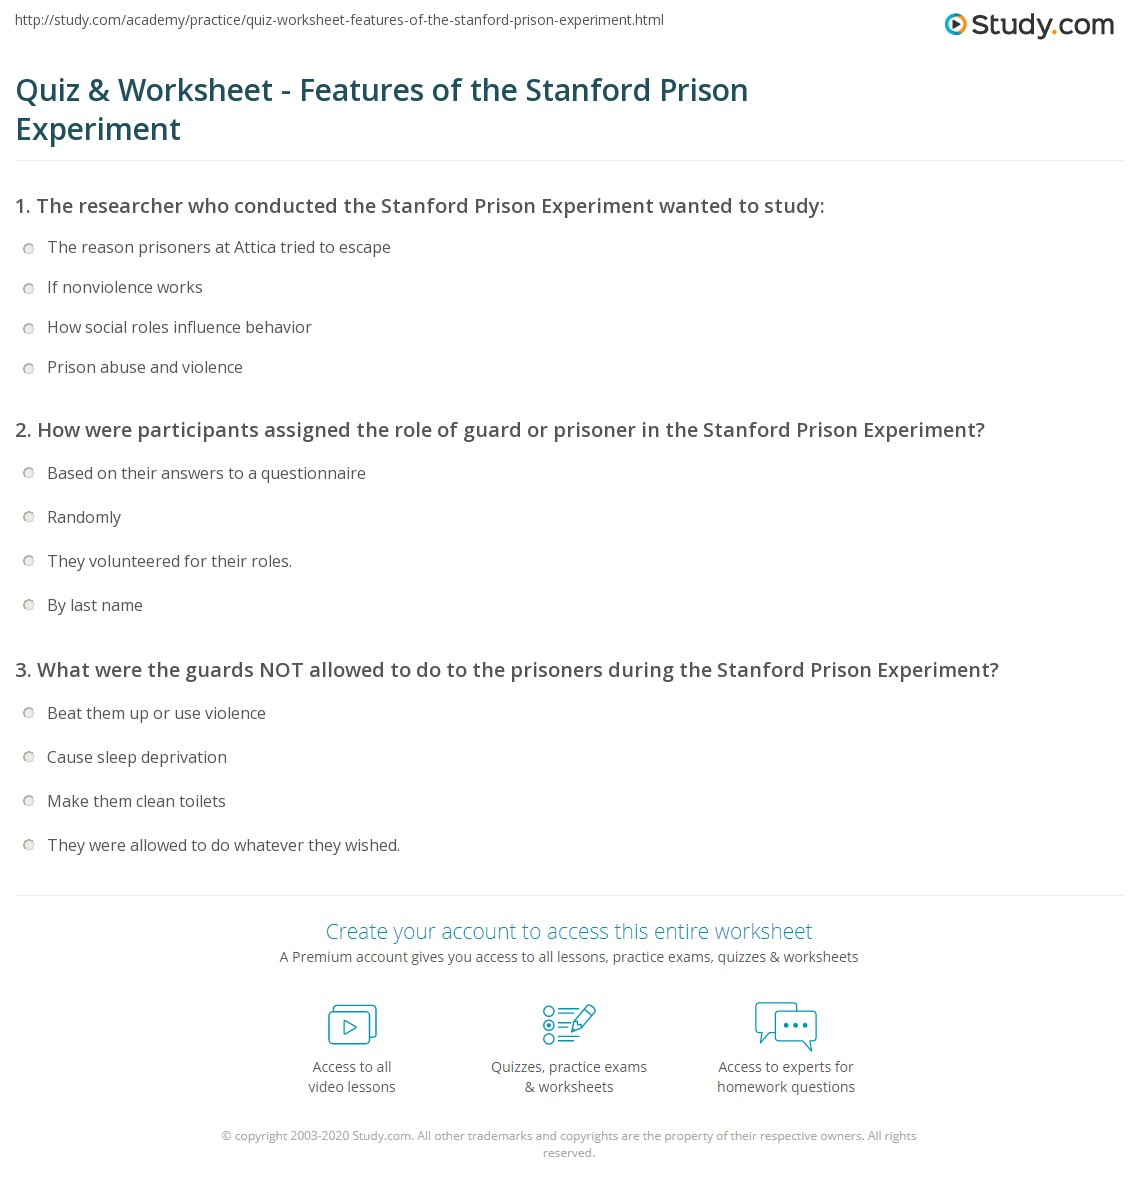 zimbardo prison experiment ethical issues